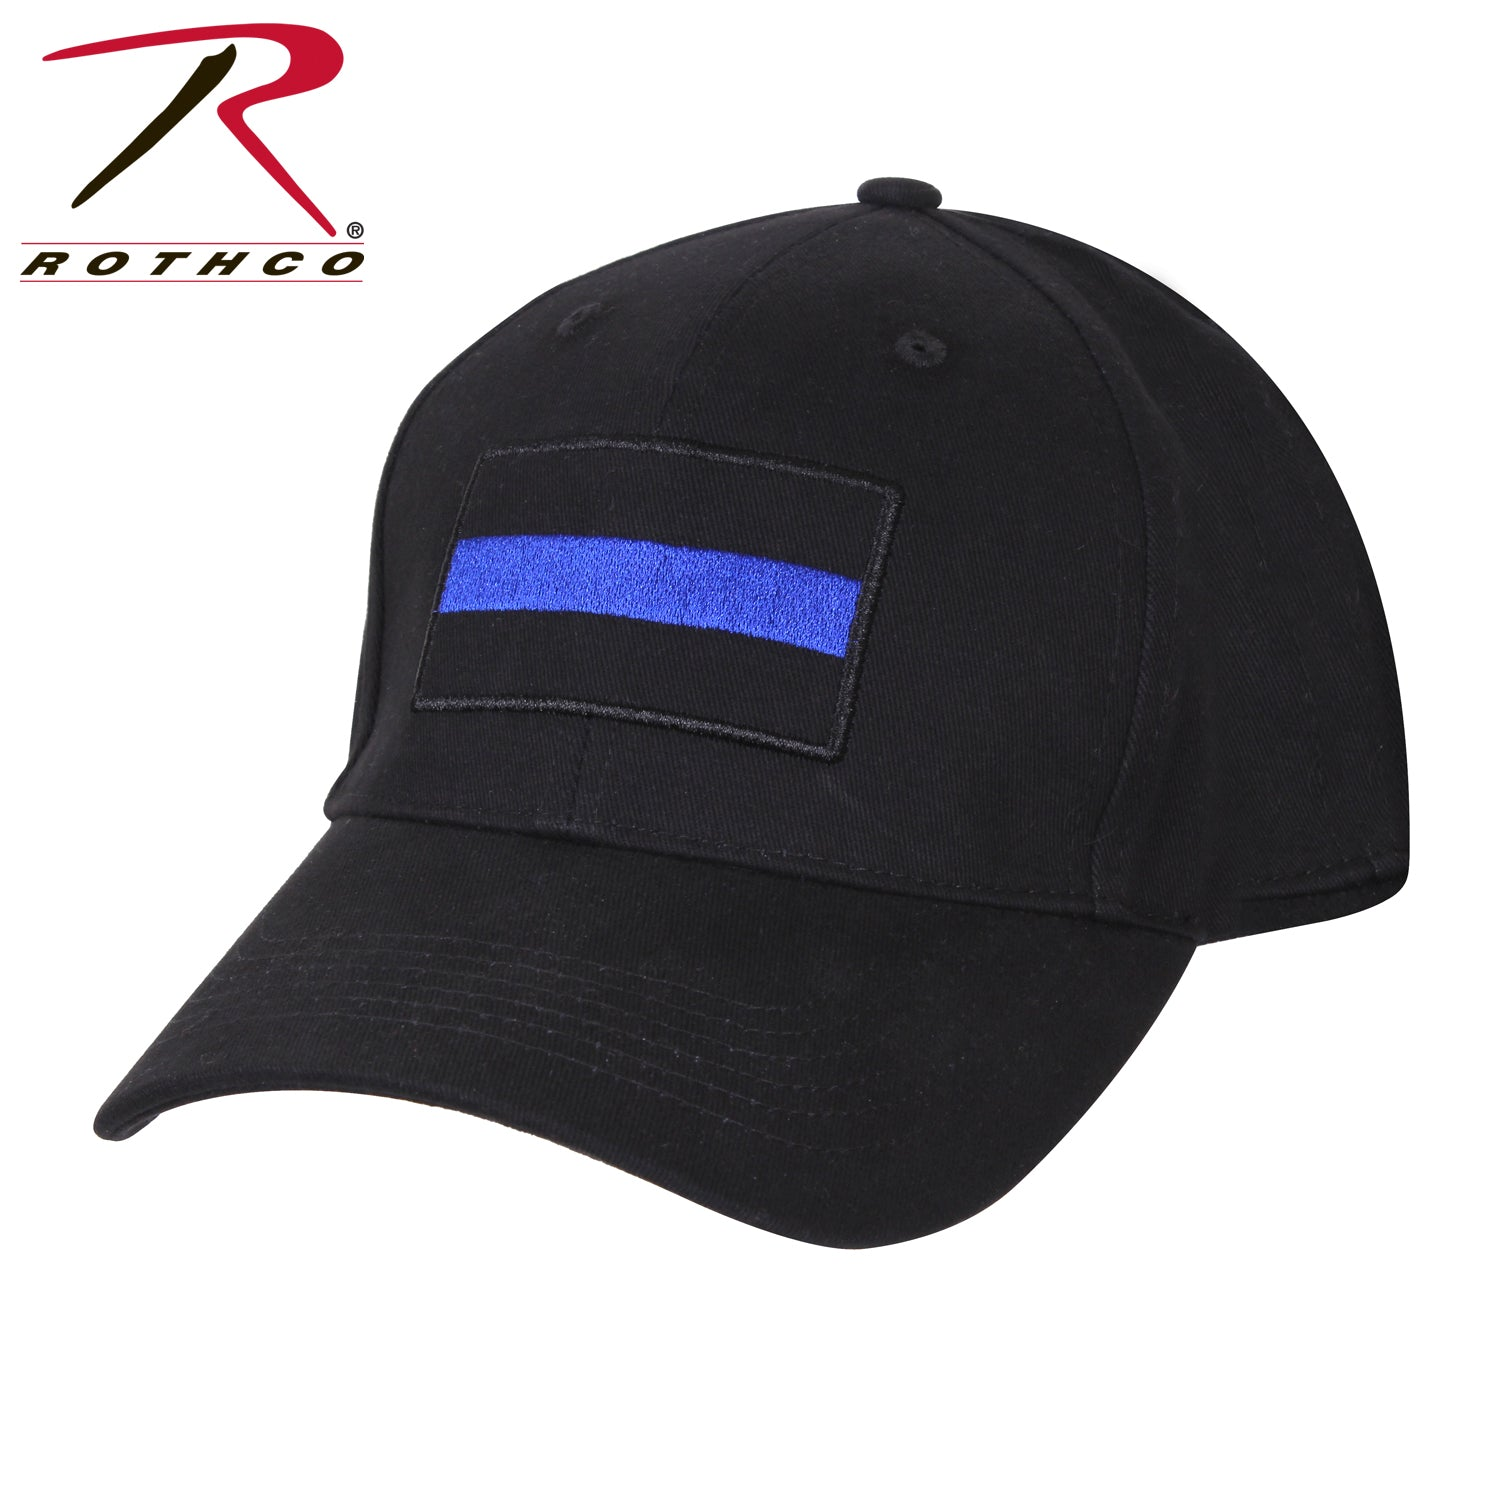 Rothco Thin Blue Line Low Profile Cap - red-diamond-uniform-police-supply